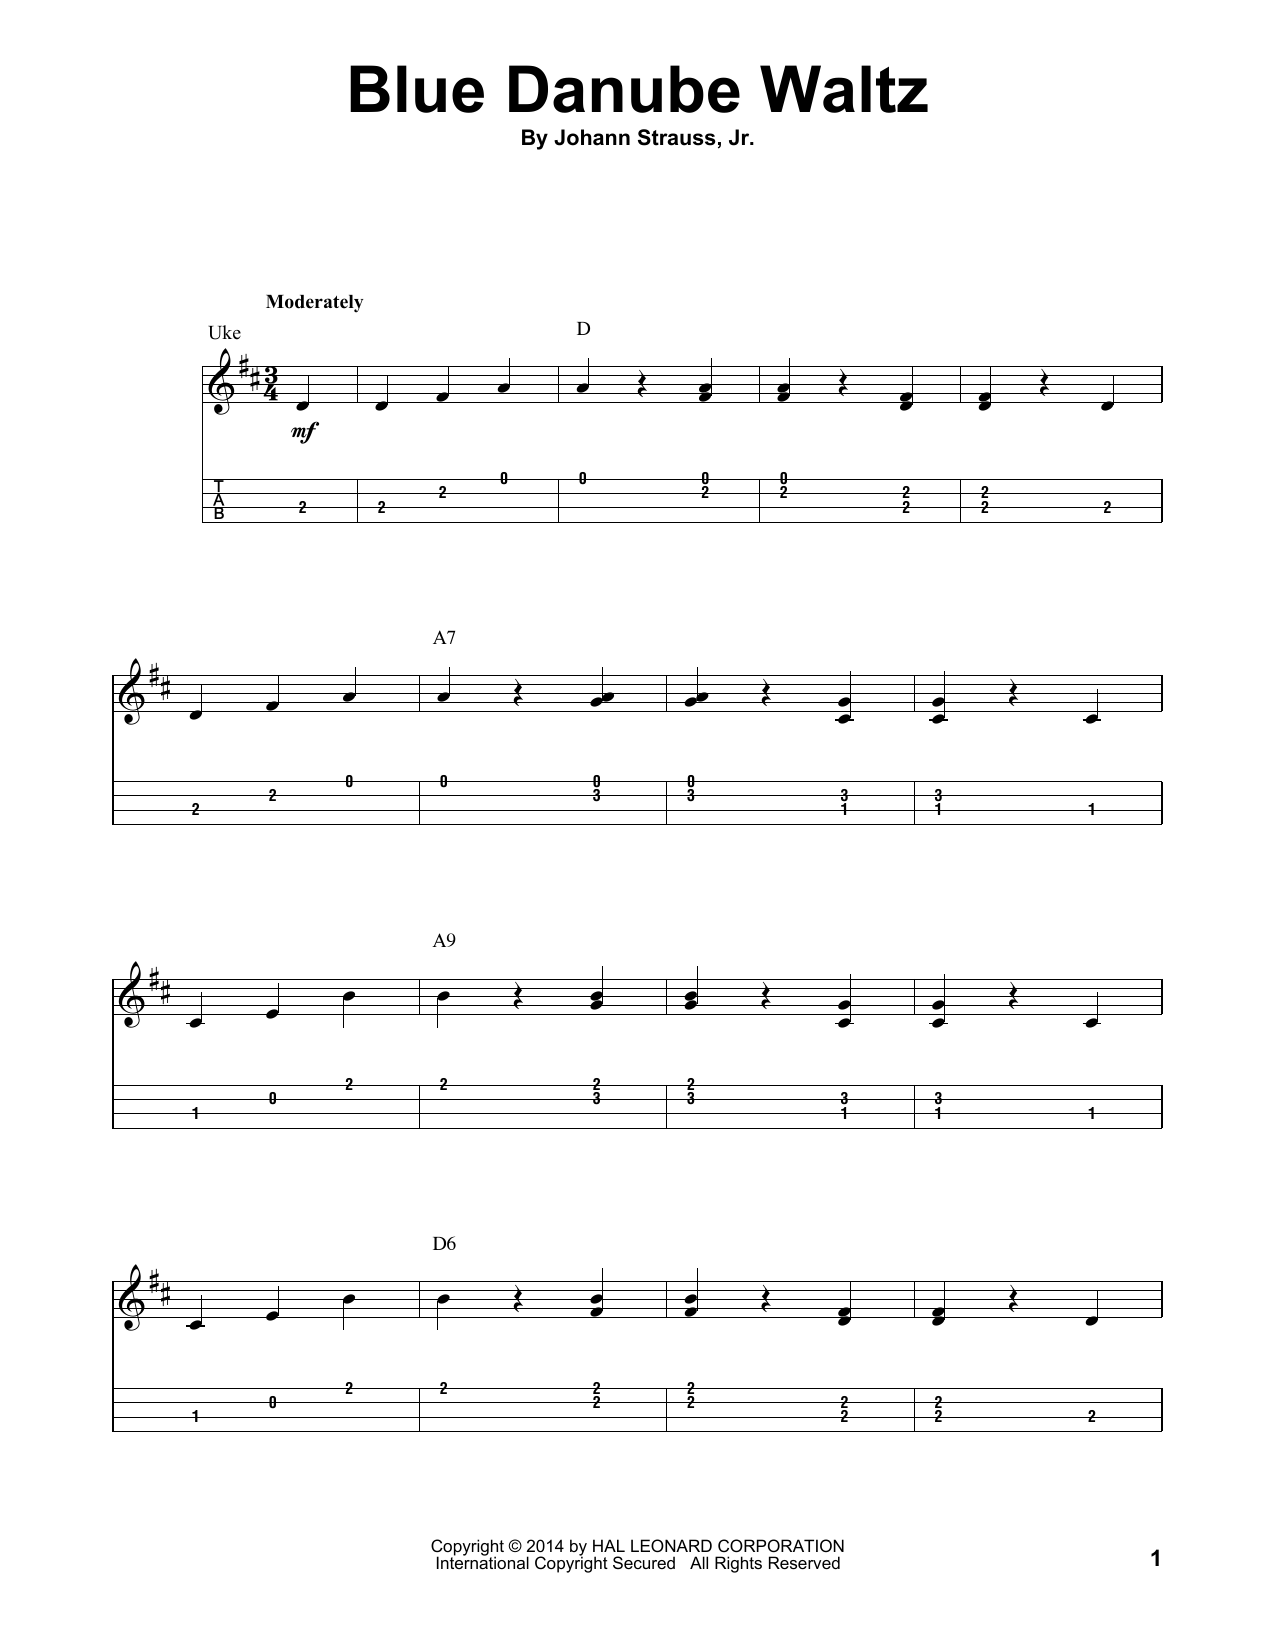 Johann Strauss, Jr. Blue Danube Waltz sheet music notes and chords. Download Printable PDF.